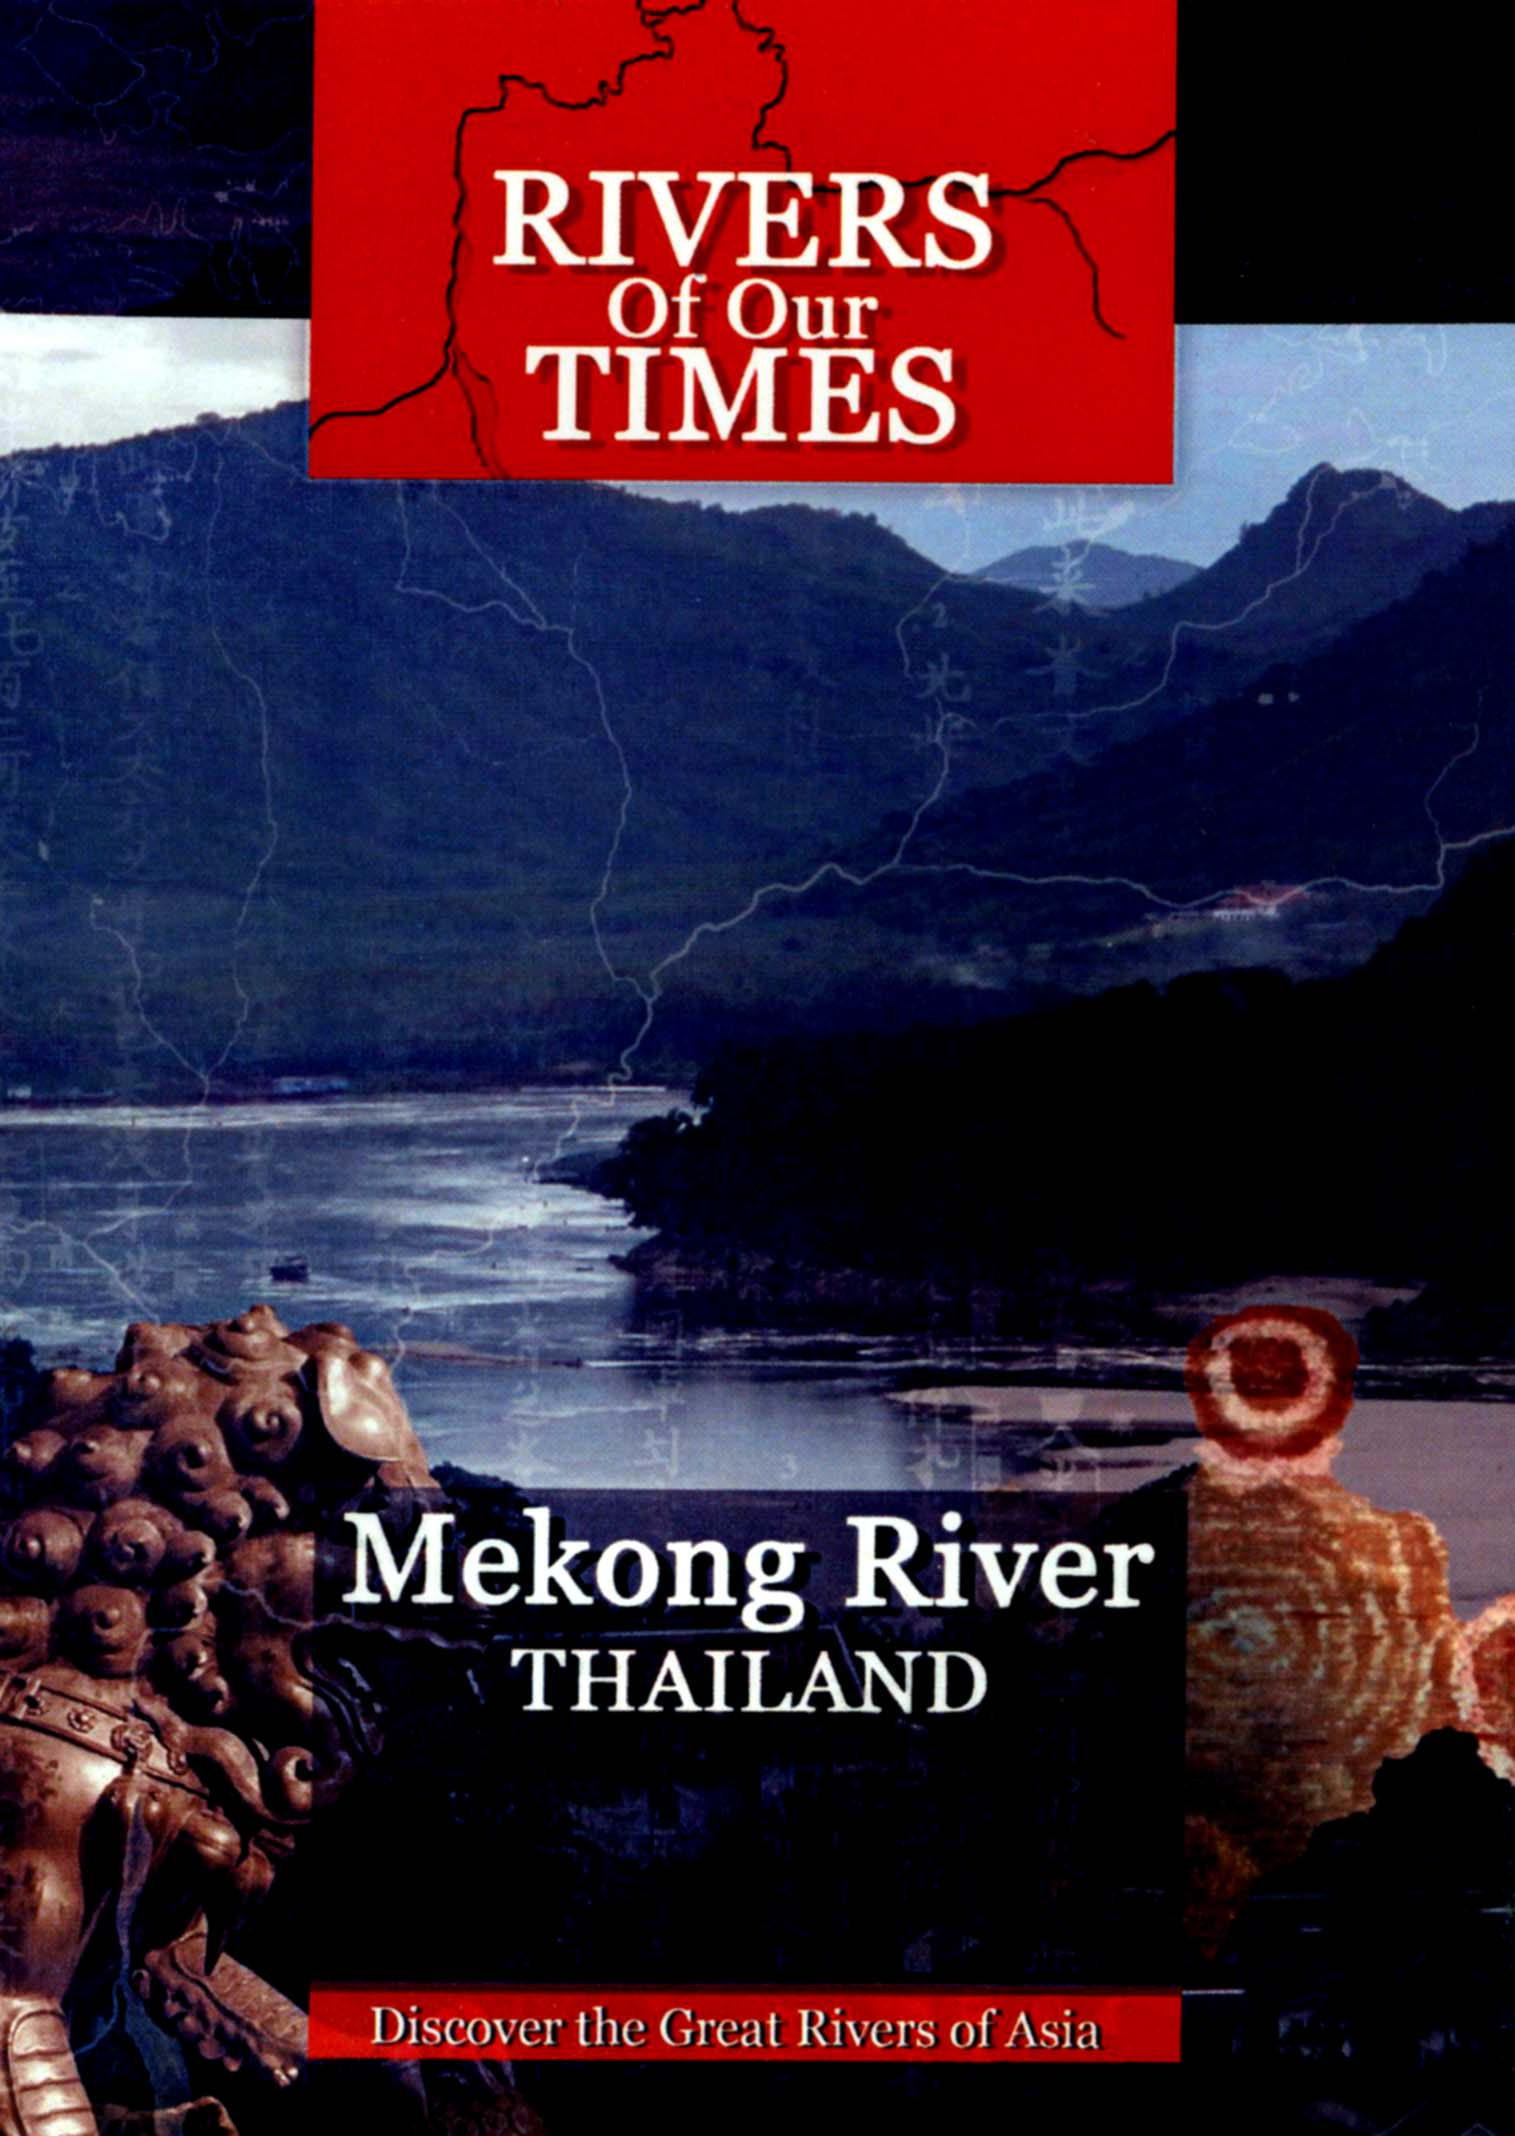 Rivers of Our Times: Mekong River - Thailand